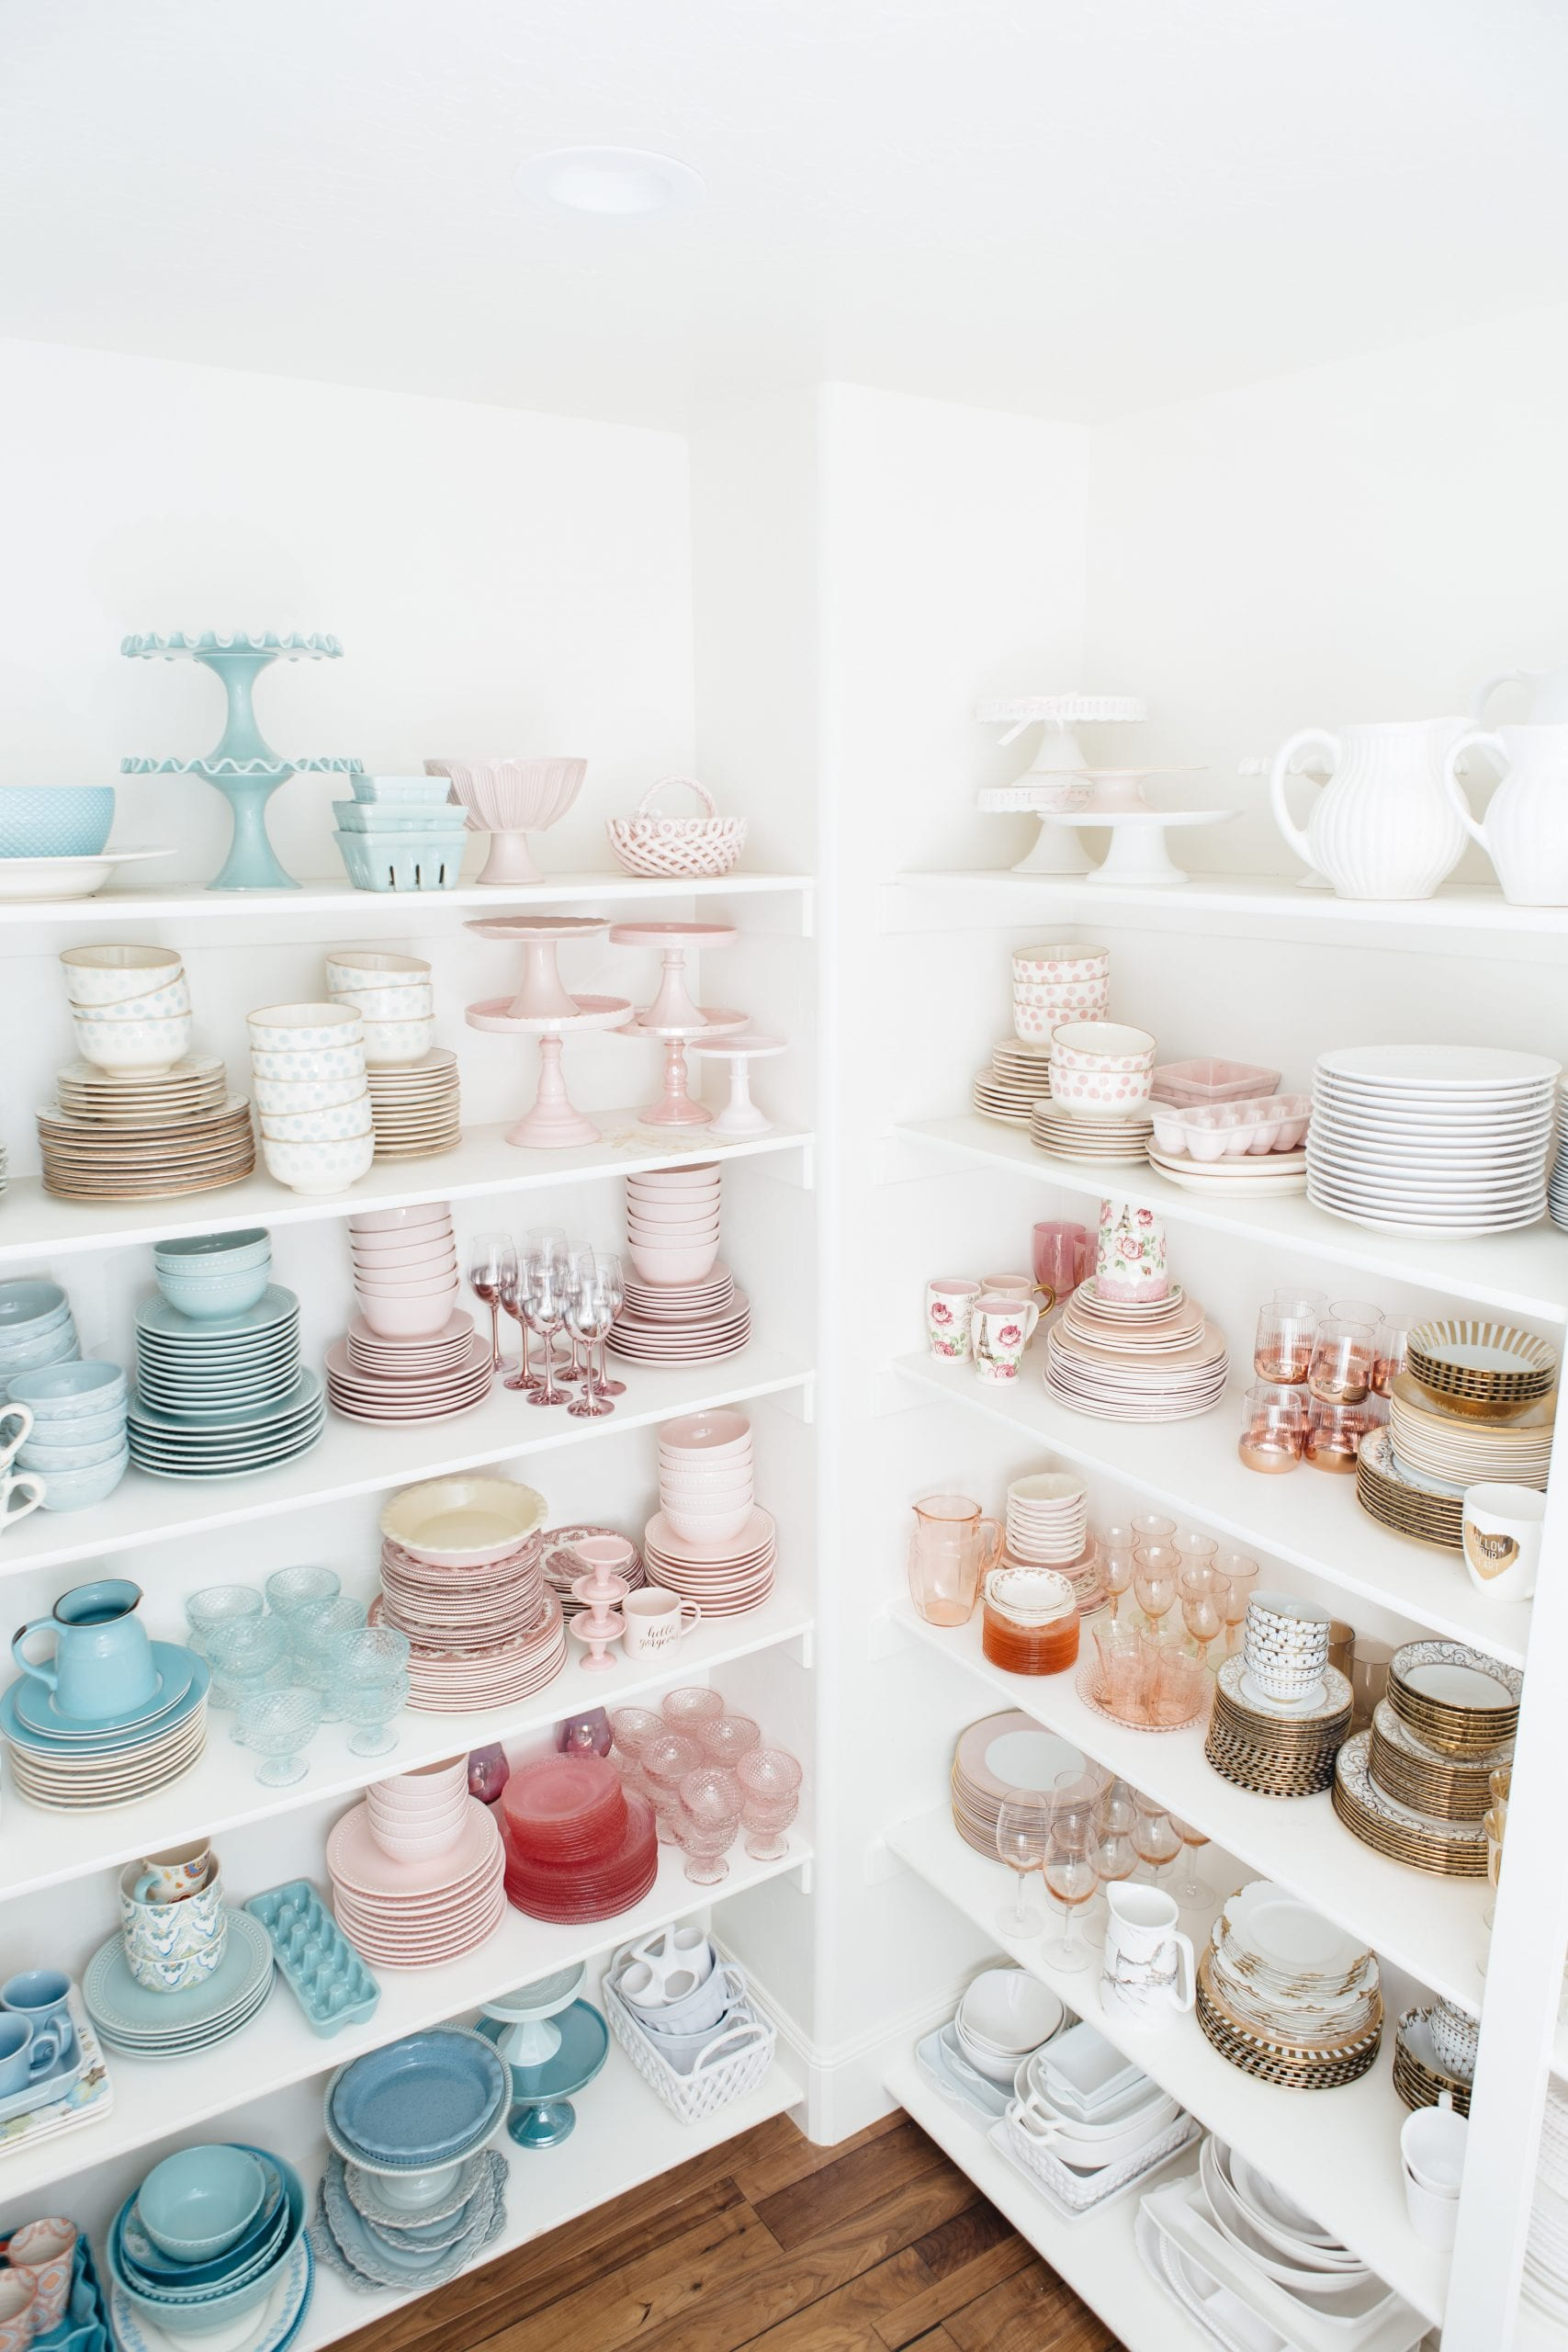 pantry dish storage and organization